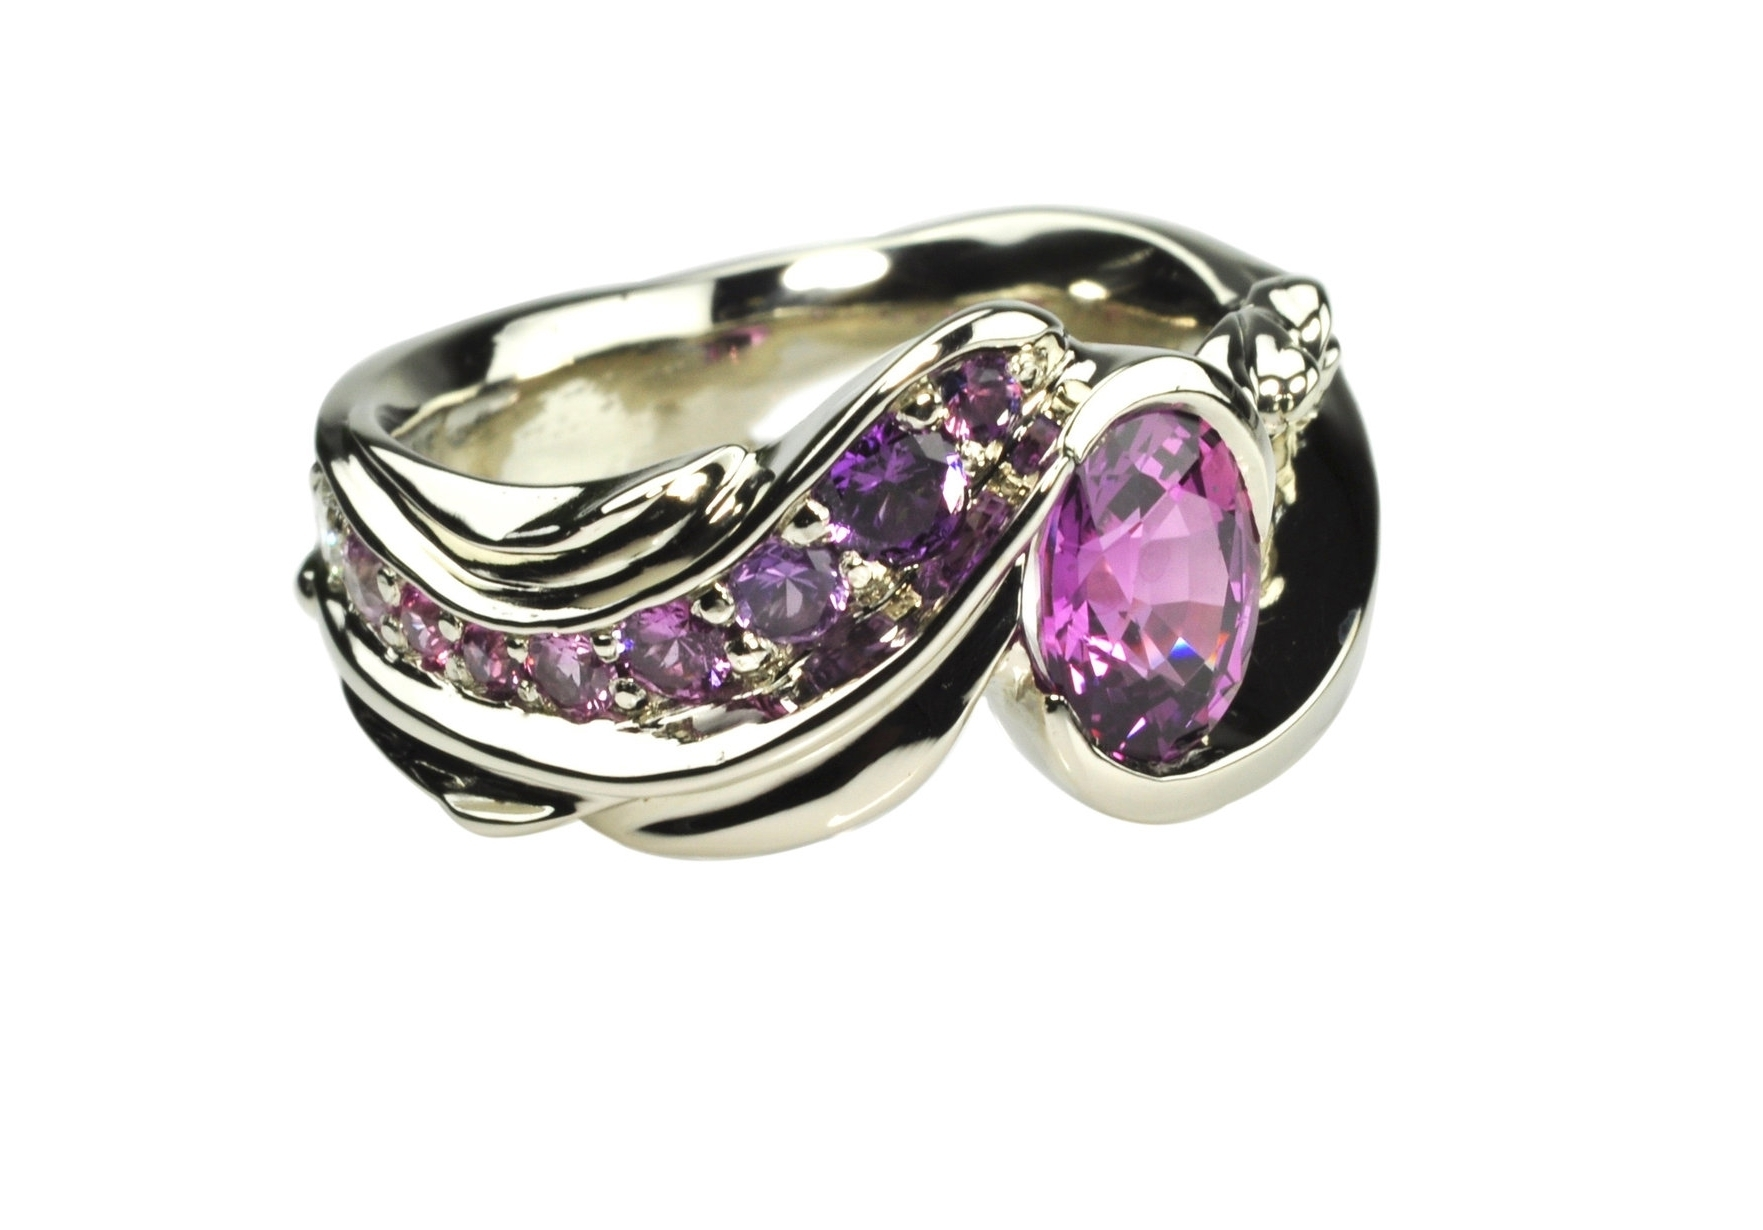 14k White Gold Ring with Pink and Purple Sapphires